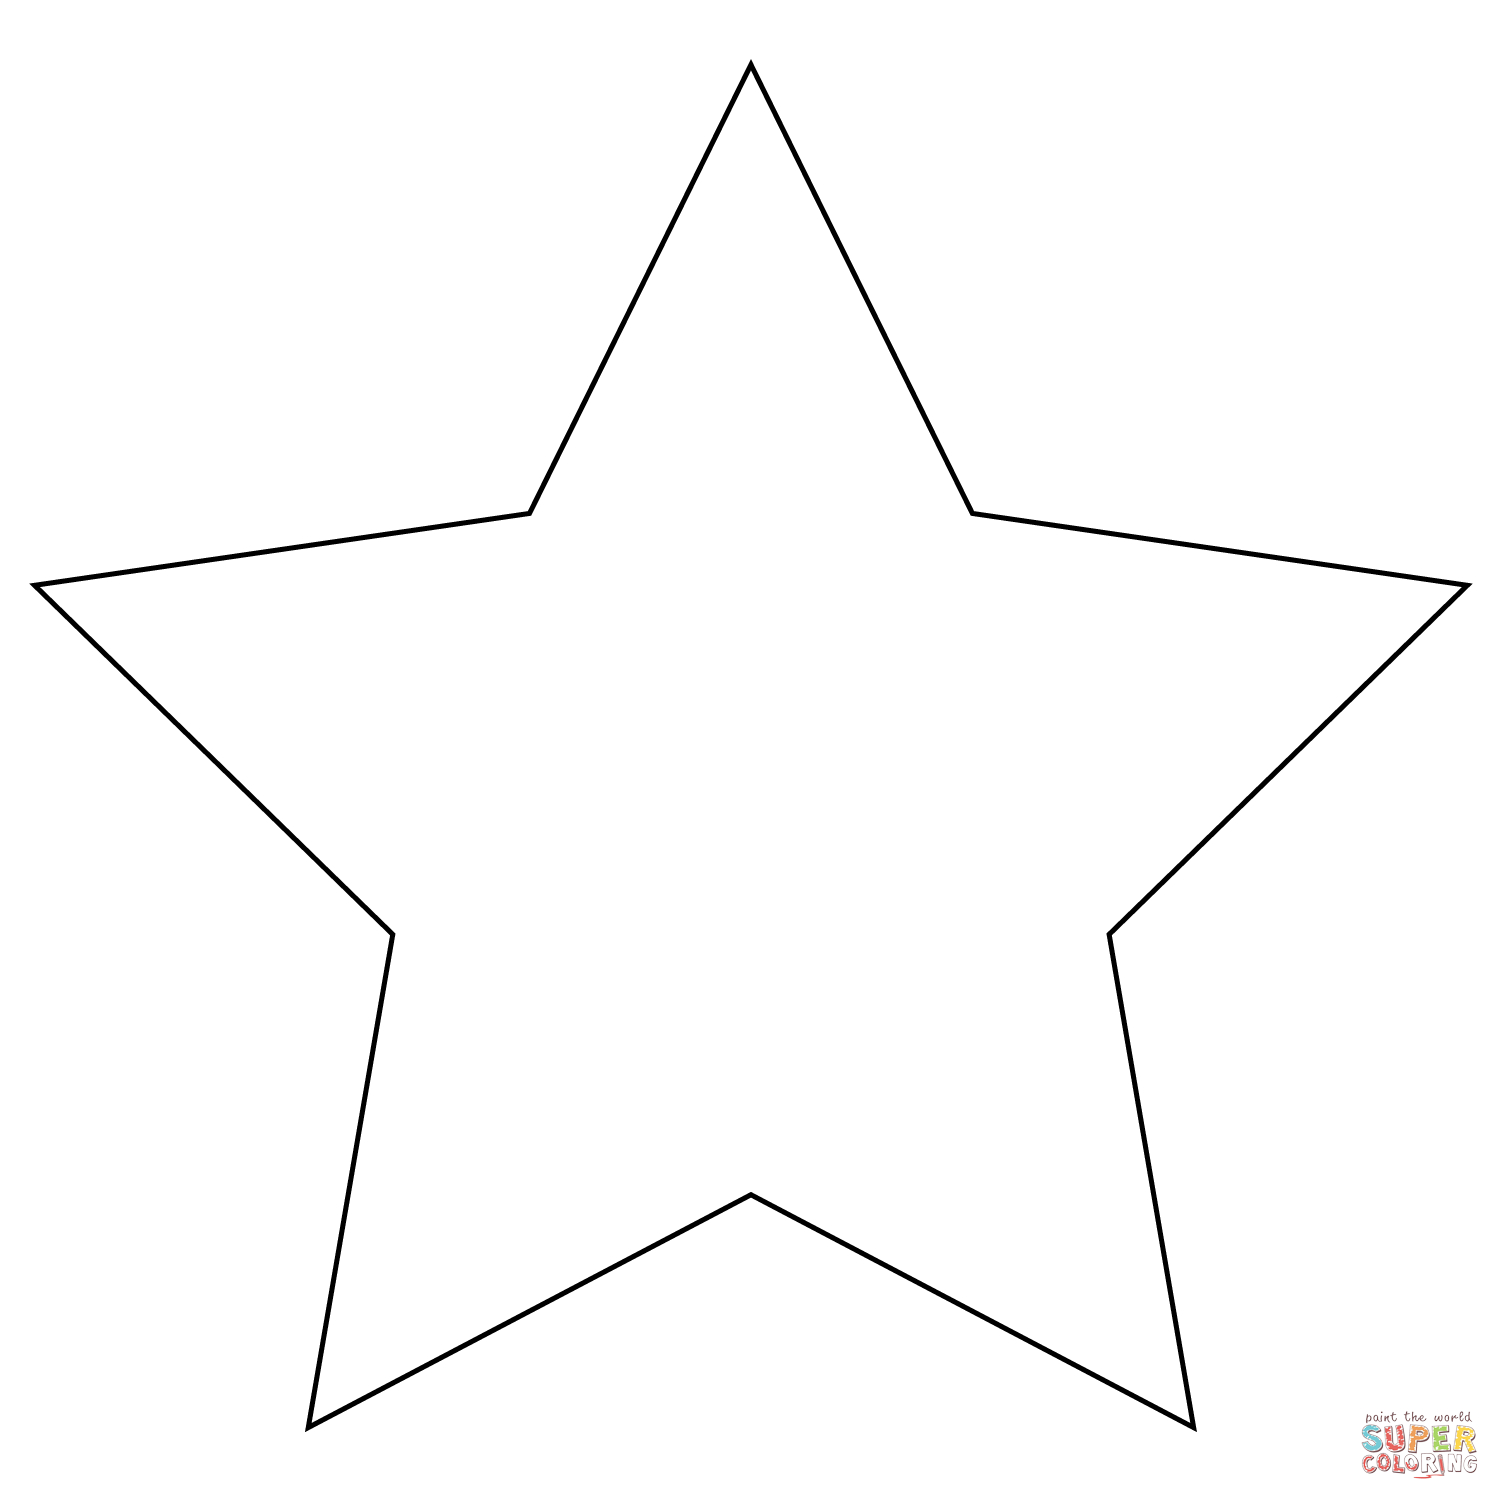 30+ Marvelous Photo of Star Coloring Pages